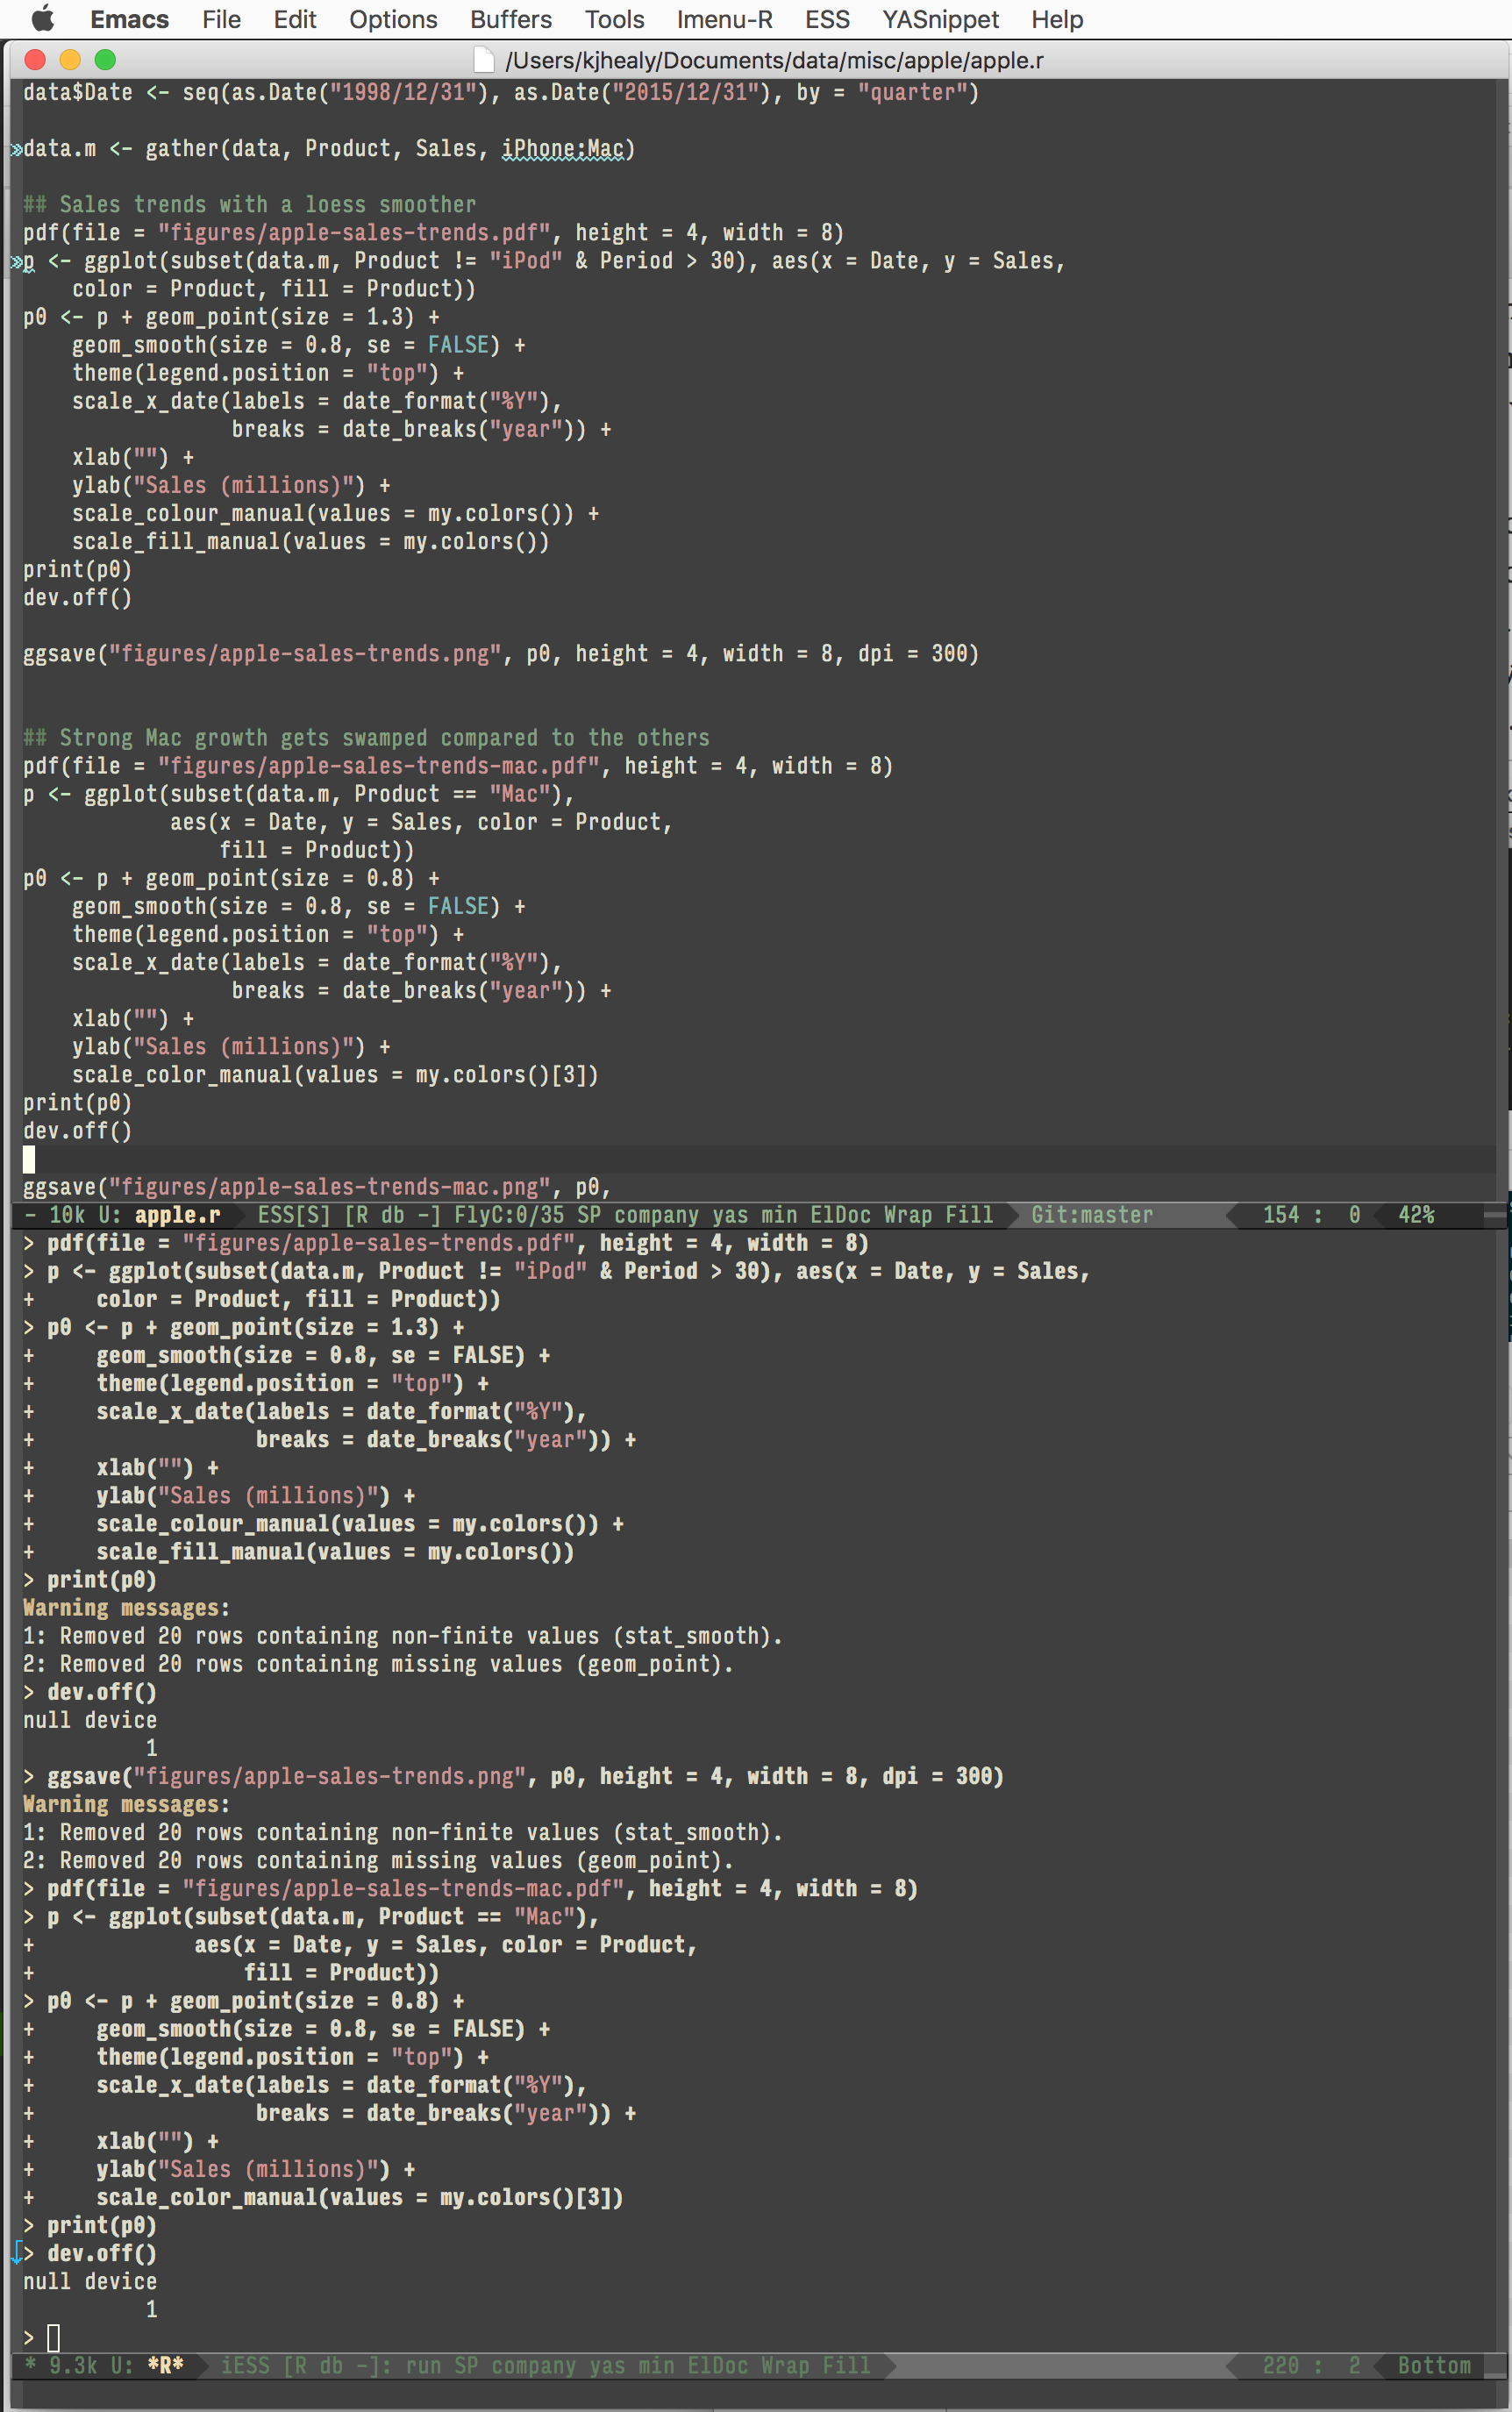 Figure 2: Working with R in Emacs using ESS. A document containing R code (apple.r) is open in the top half of the screen. Below the divider, an R session is running, also inside Emacs. Code from the top pane is sent to the bottom with a keyboard shortcut, where it is evaluated by R. We can also jump down to the bottom pane and do work there. Small details like a lint checker, active line highlighting, and revision-control information are also visible.